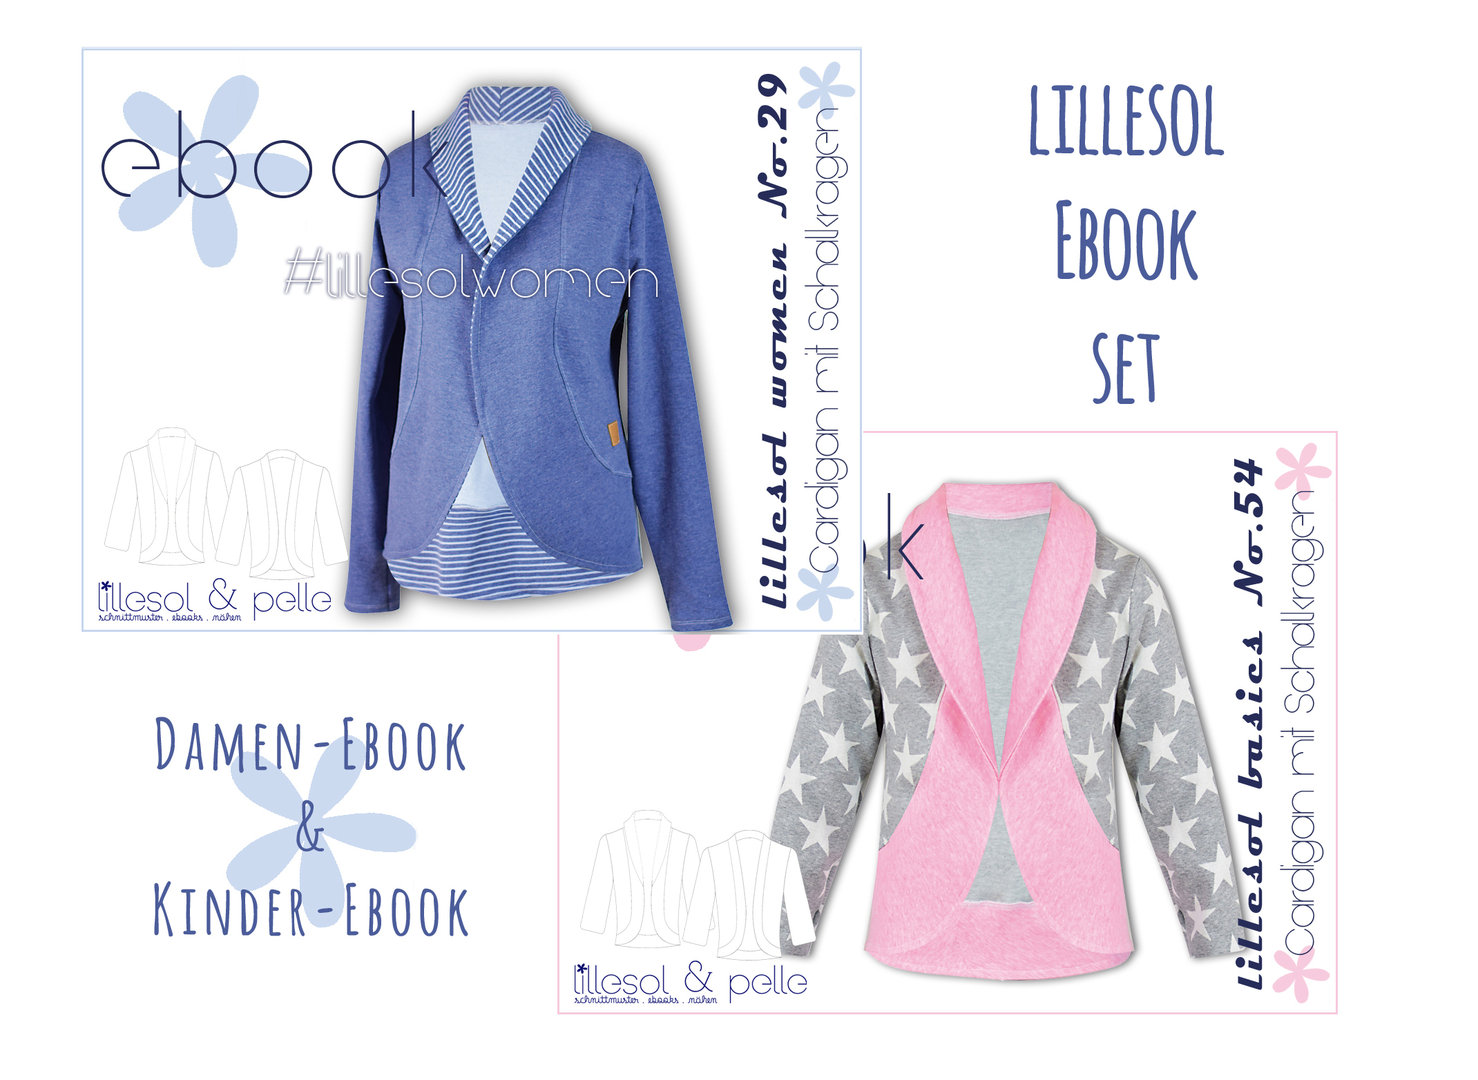 lillesol ebook set basics No.54 und women No.29 * mit Video-Nähanleitung *